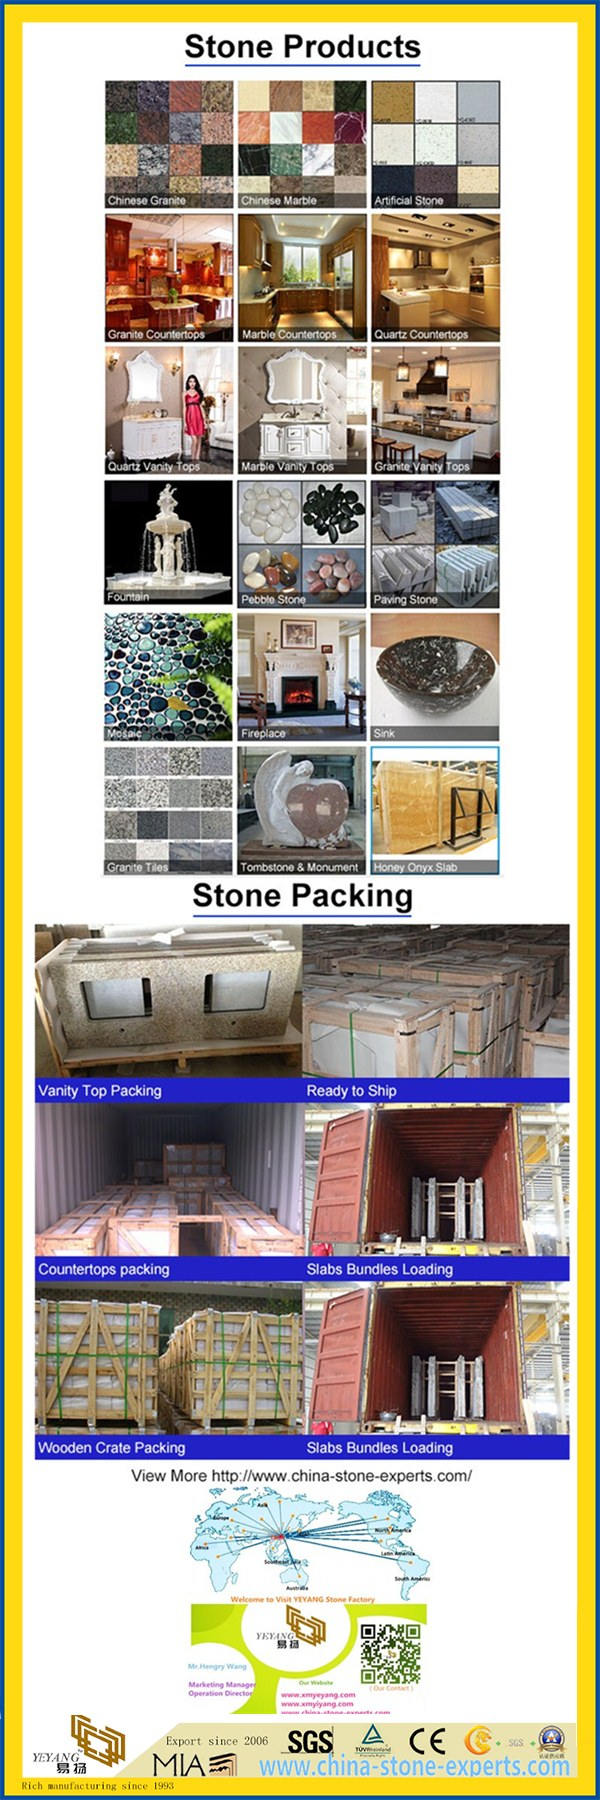 02 600 Yeyang Stone Products+Packing-02